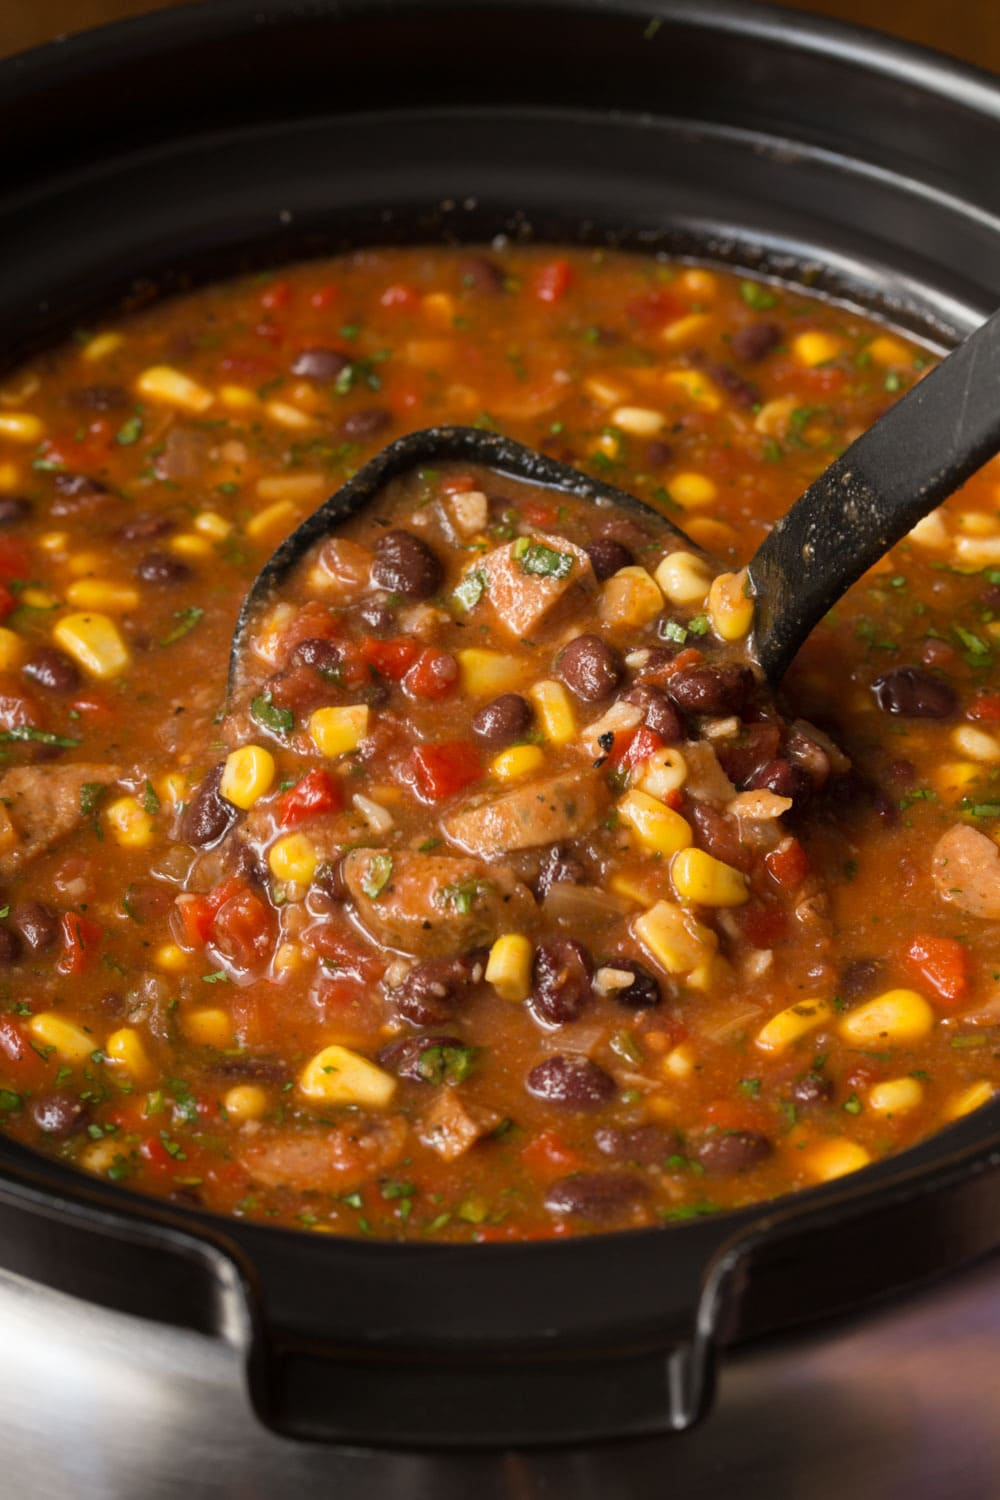 A photo of a pot of Slow Cooker Black Bean and Chicken Sausage Tortilla Soup, one of The Cafe Sucre Farine's Soup Recipes. A black ladle is lifting a portion of the soup.